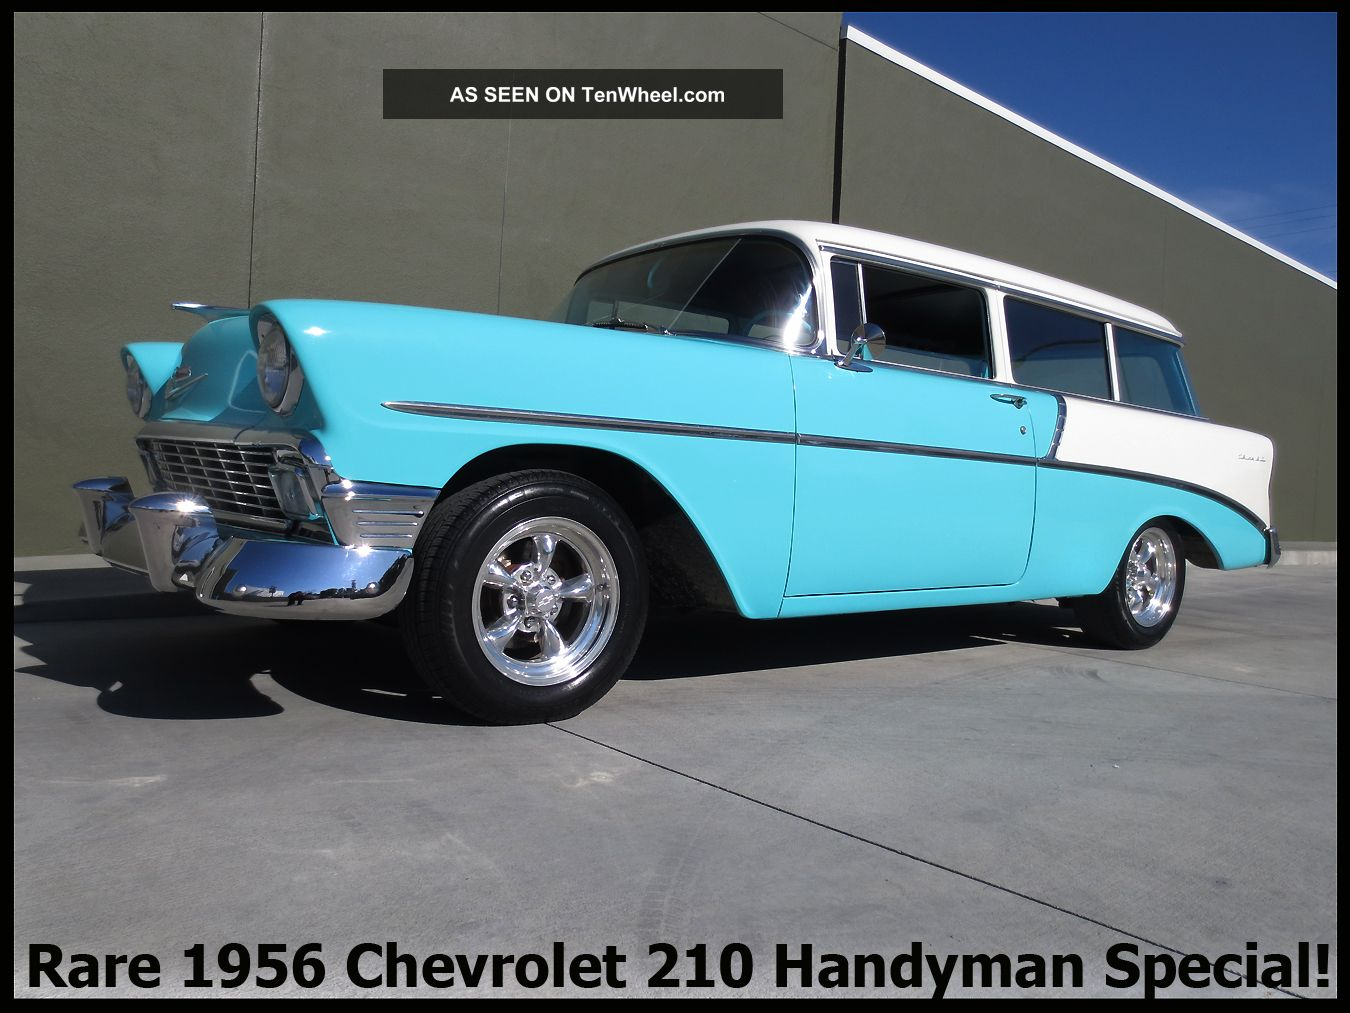 +rare Classic 1956 Chevrolet 210 Handyman Special Rust - Ca.  Two - Door Wagon + Bel Air/150/210 photo